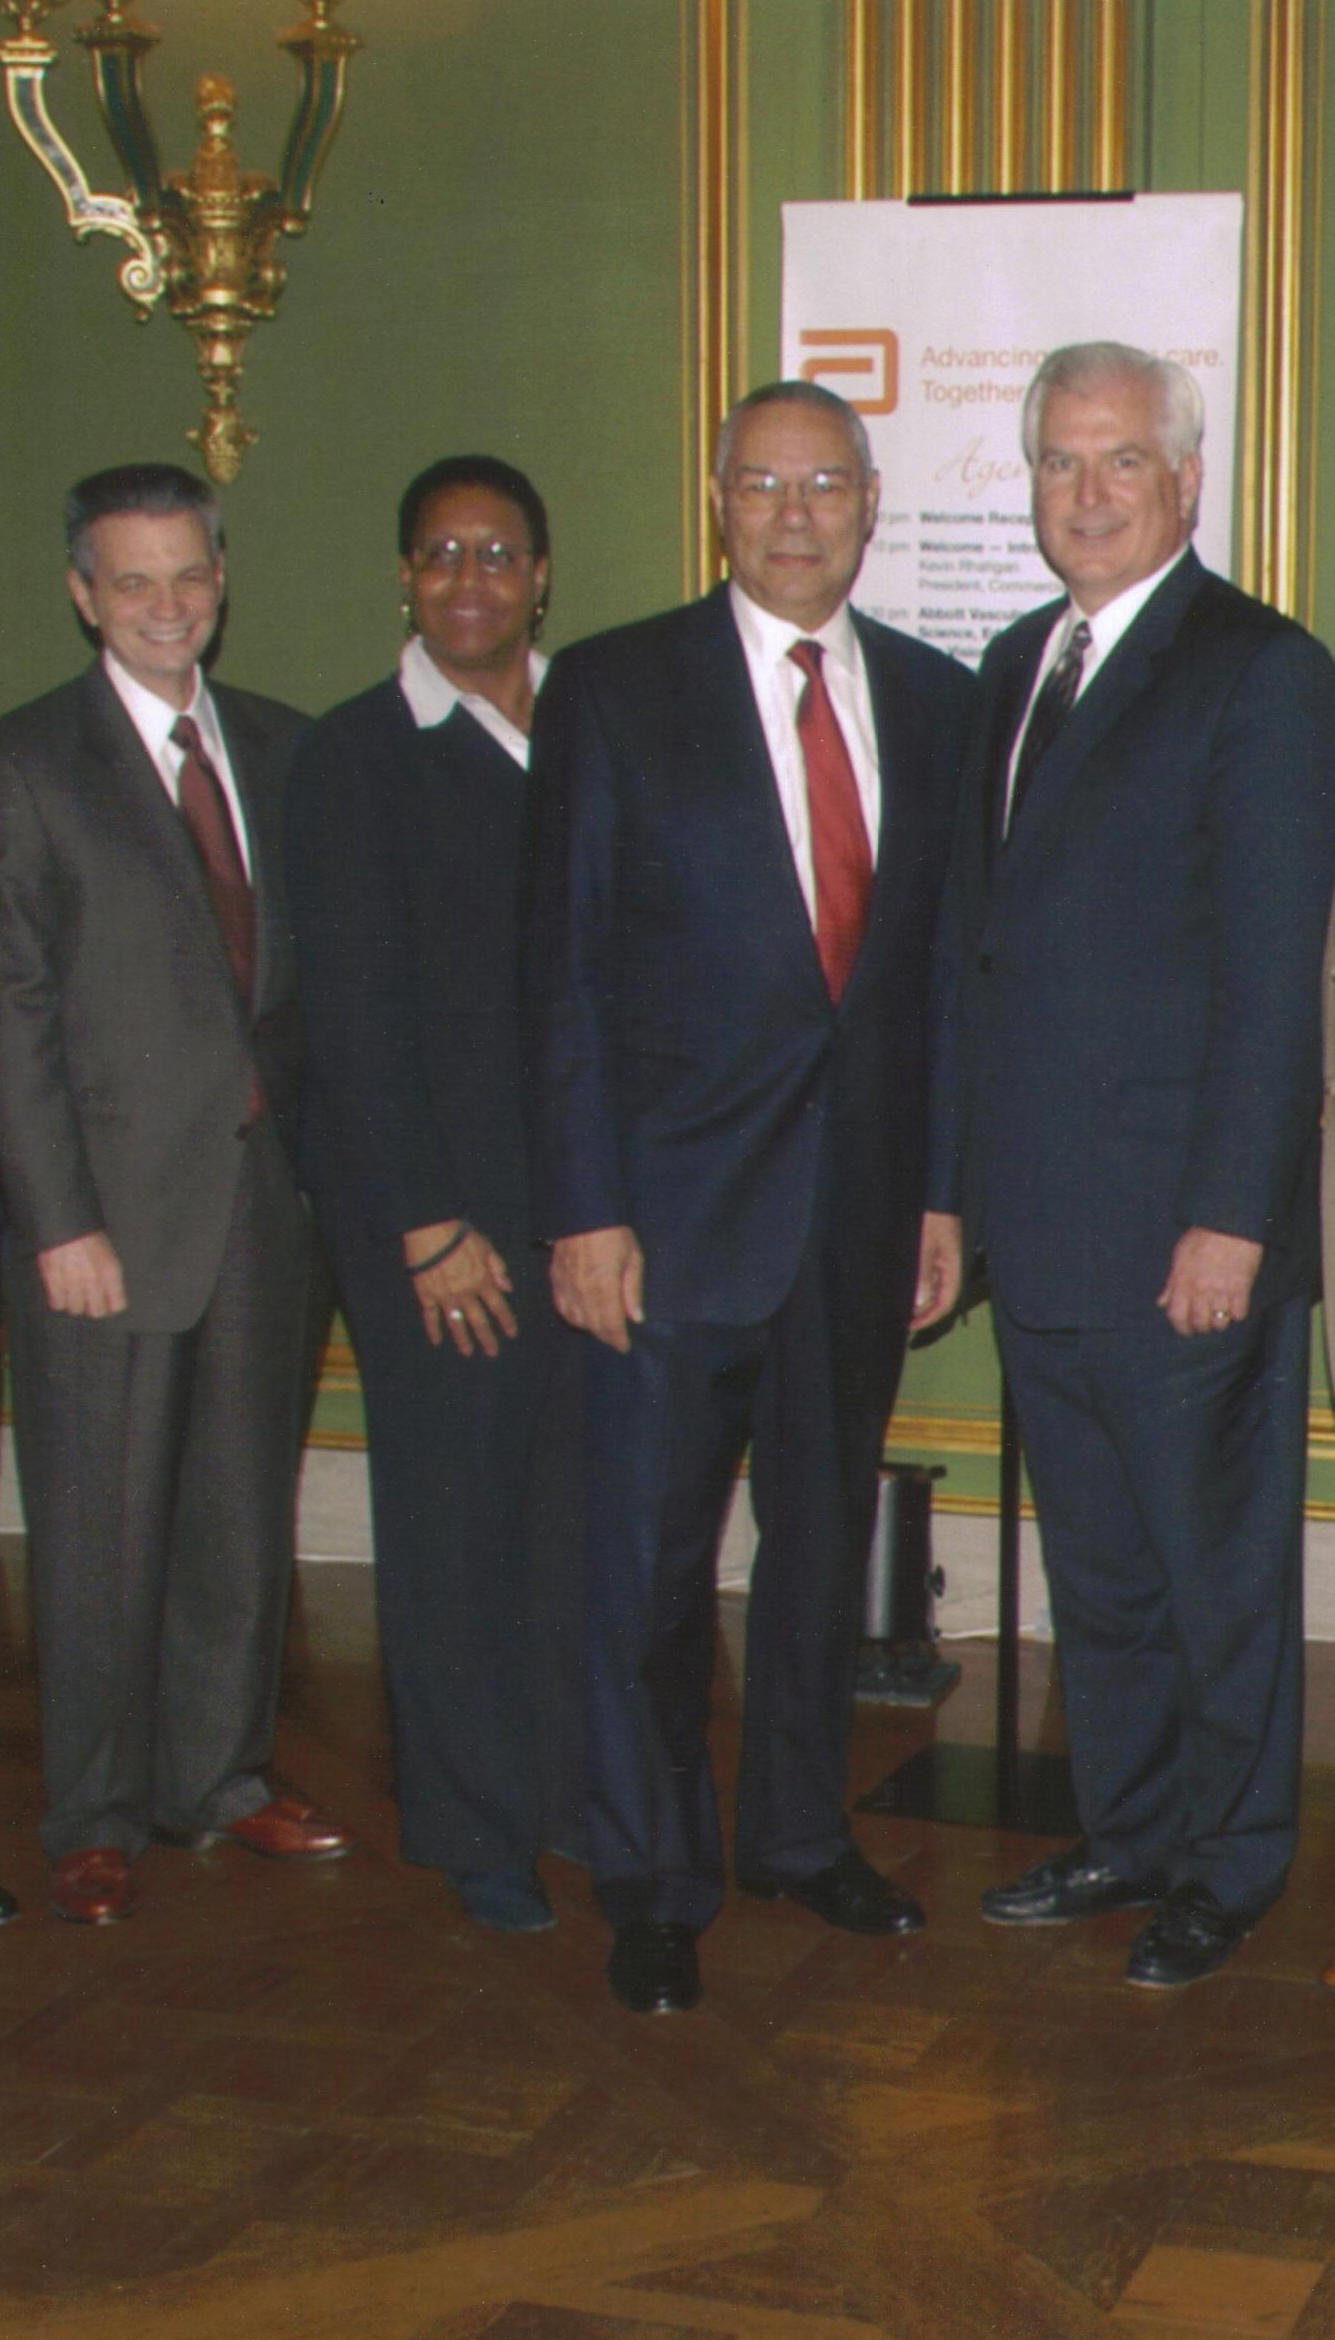 Sandra Burke with General Colin Powell & Abbott Top Executives, 2006.jpg